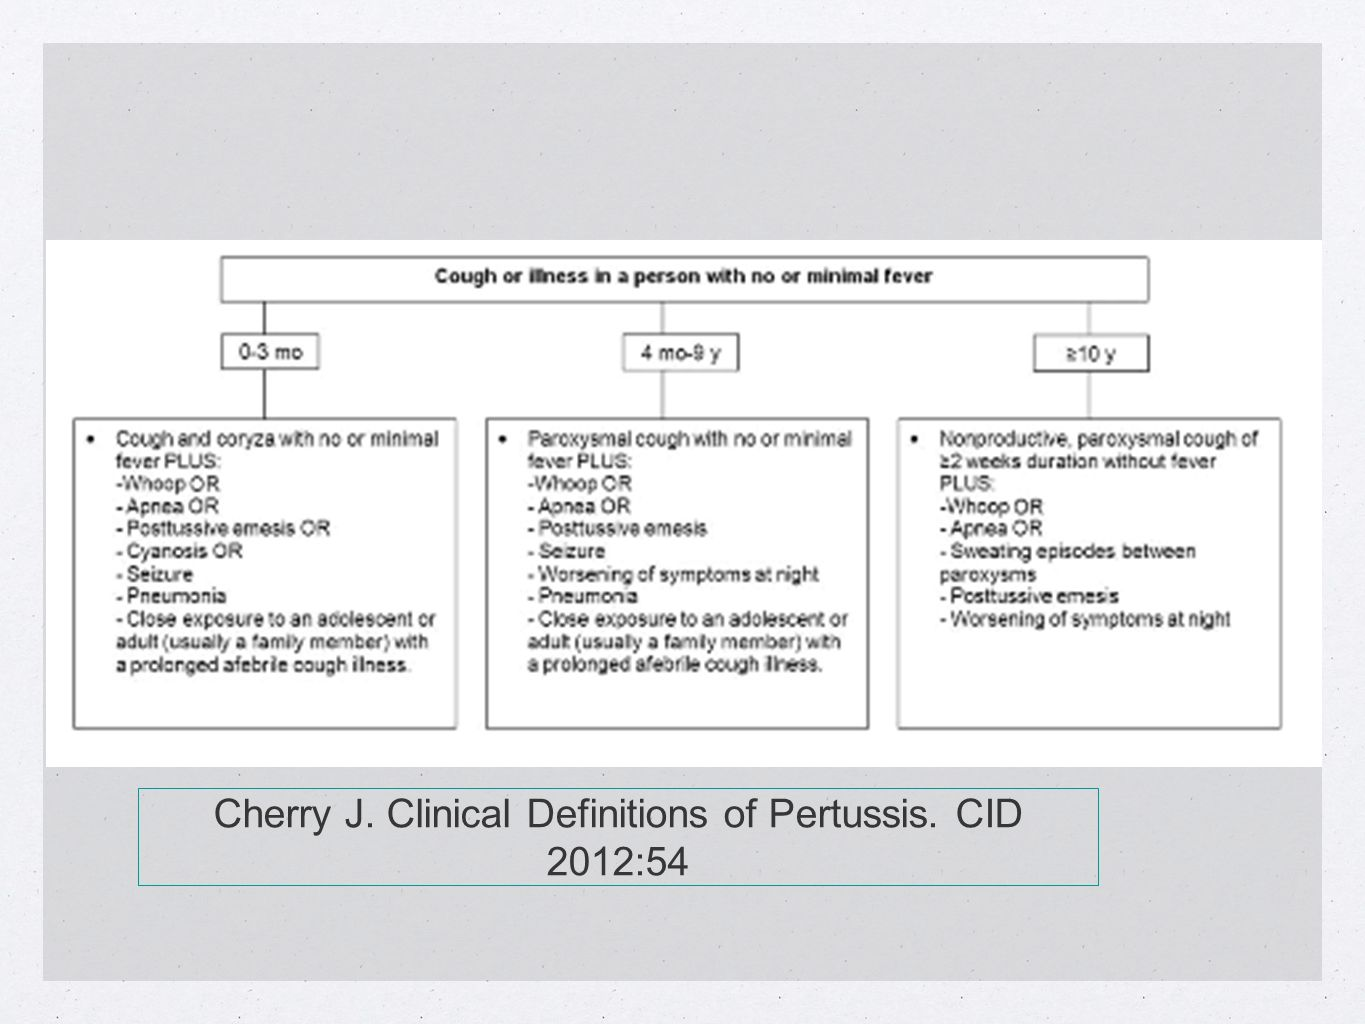 Cherry J. Clinical Definitions of Pertussis. CID 2012:54